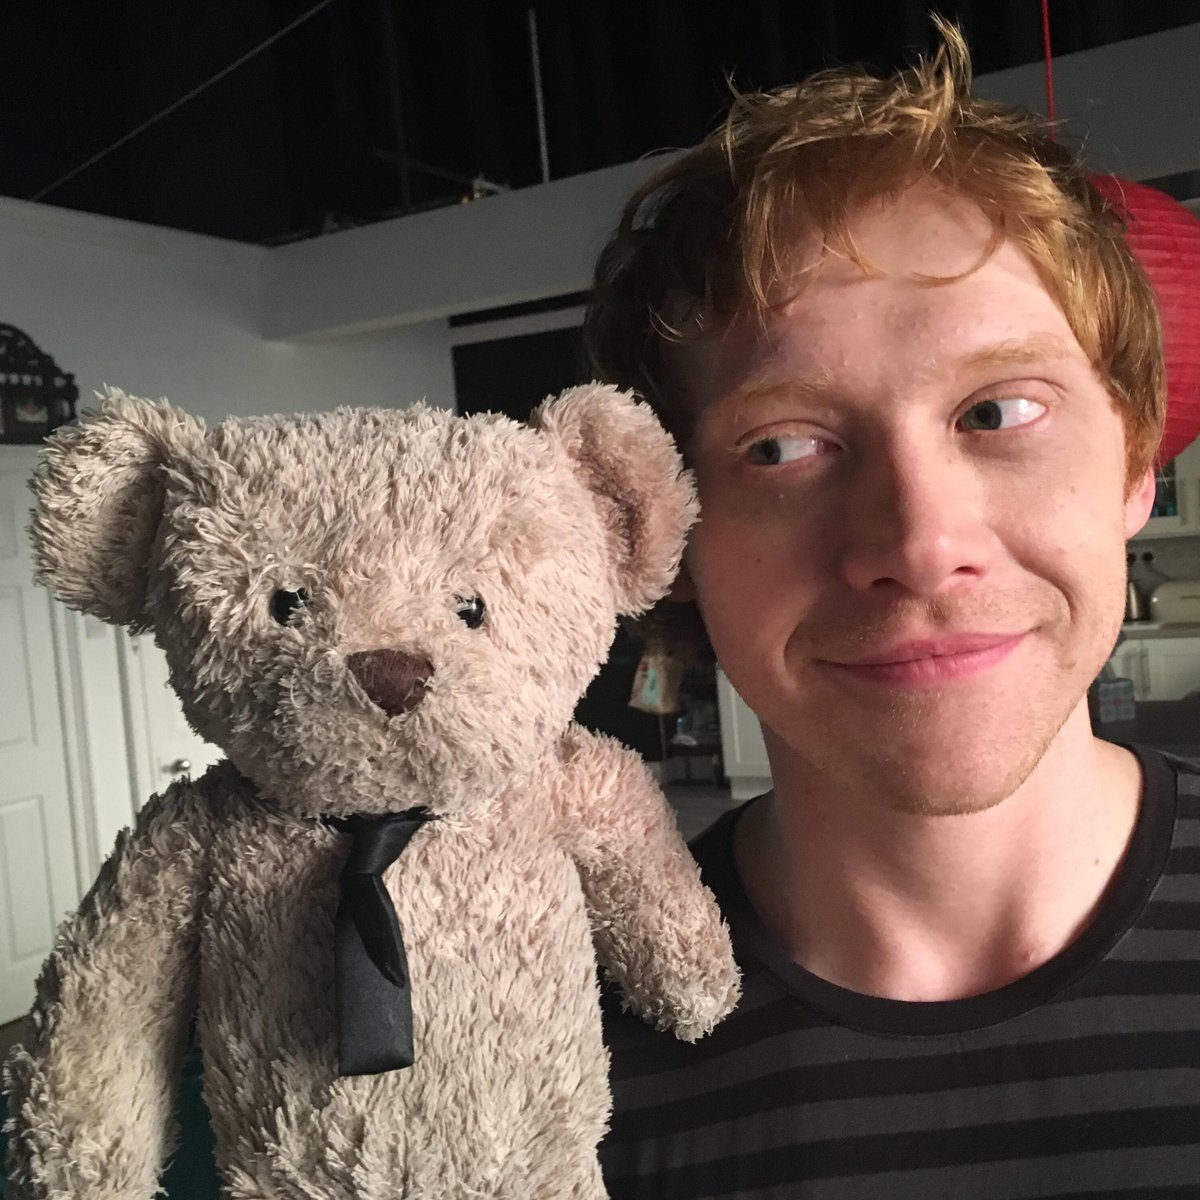 Hanging out on set of new @skyatlantic comedy #SickNote. Hoping #RupertGrint will be my new BFF. https://t.co/iiGg4GsI0Q